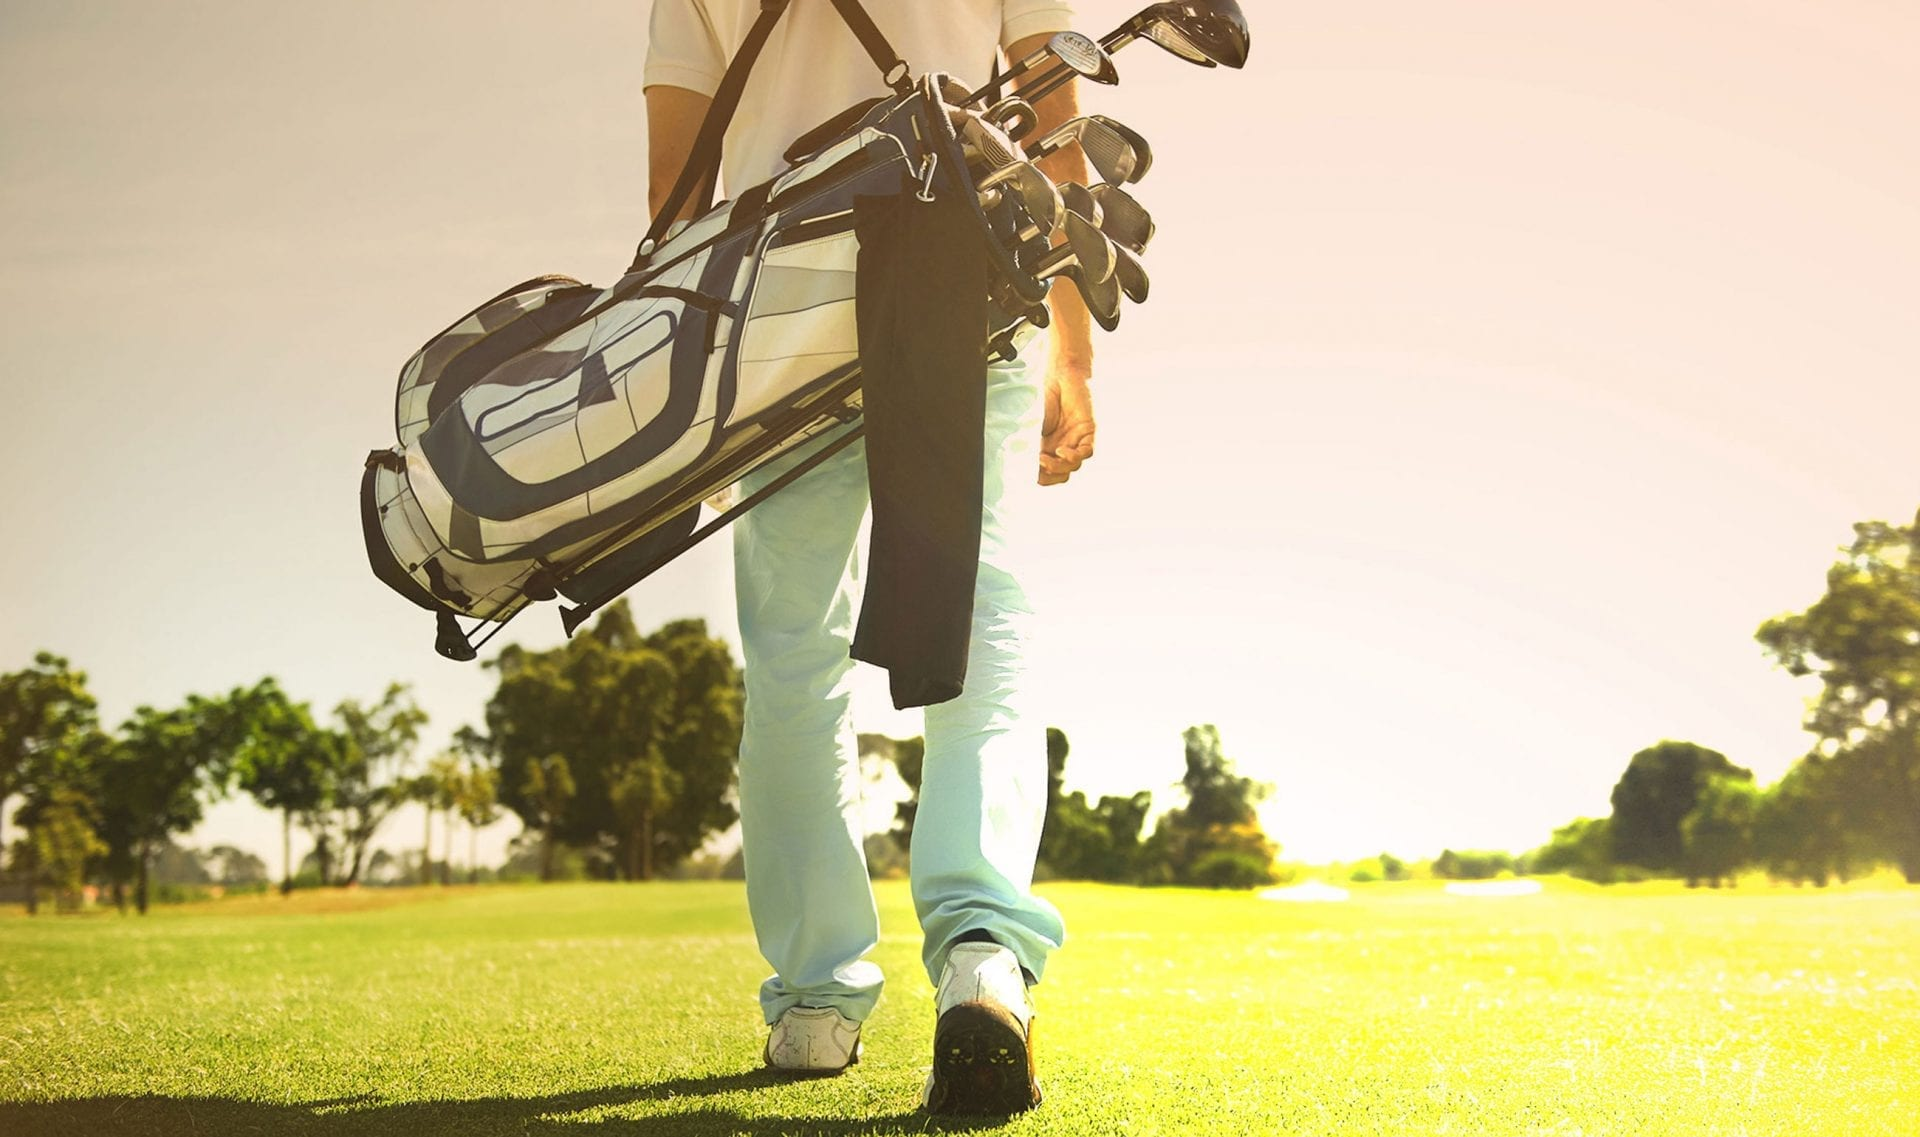 carrying golf bag